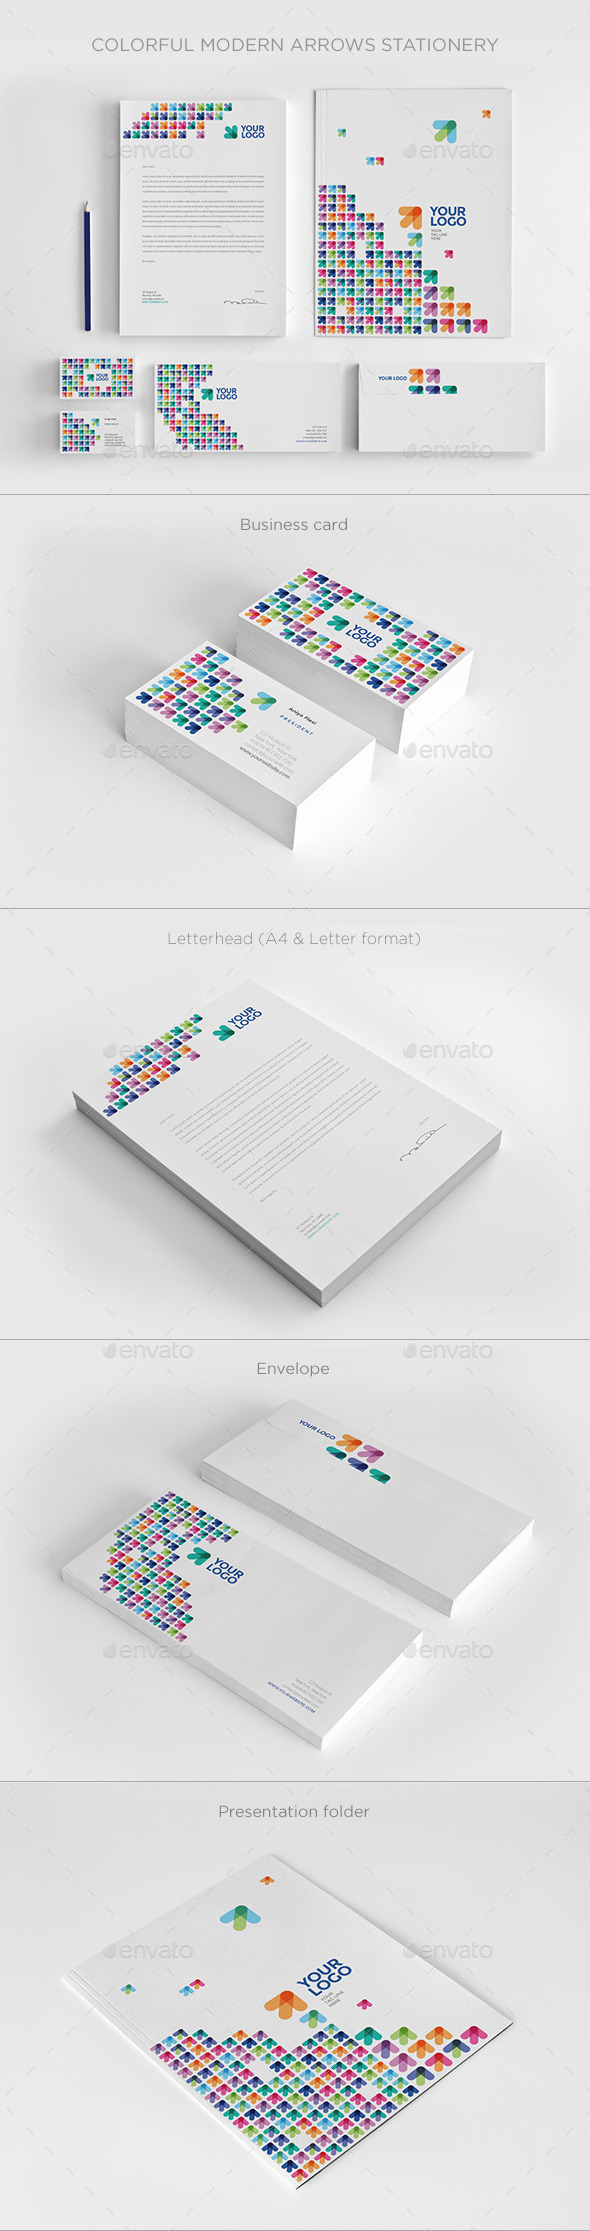 Colorful Modern Arrows Stationery - Stationery Print Templates